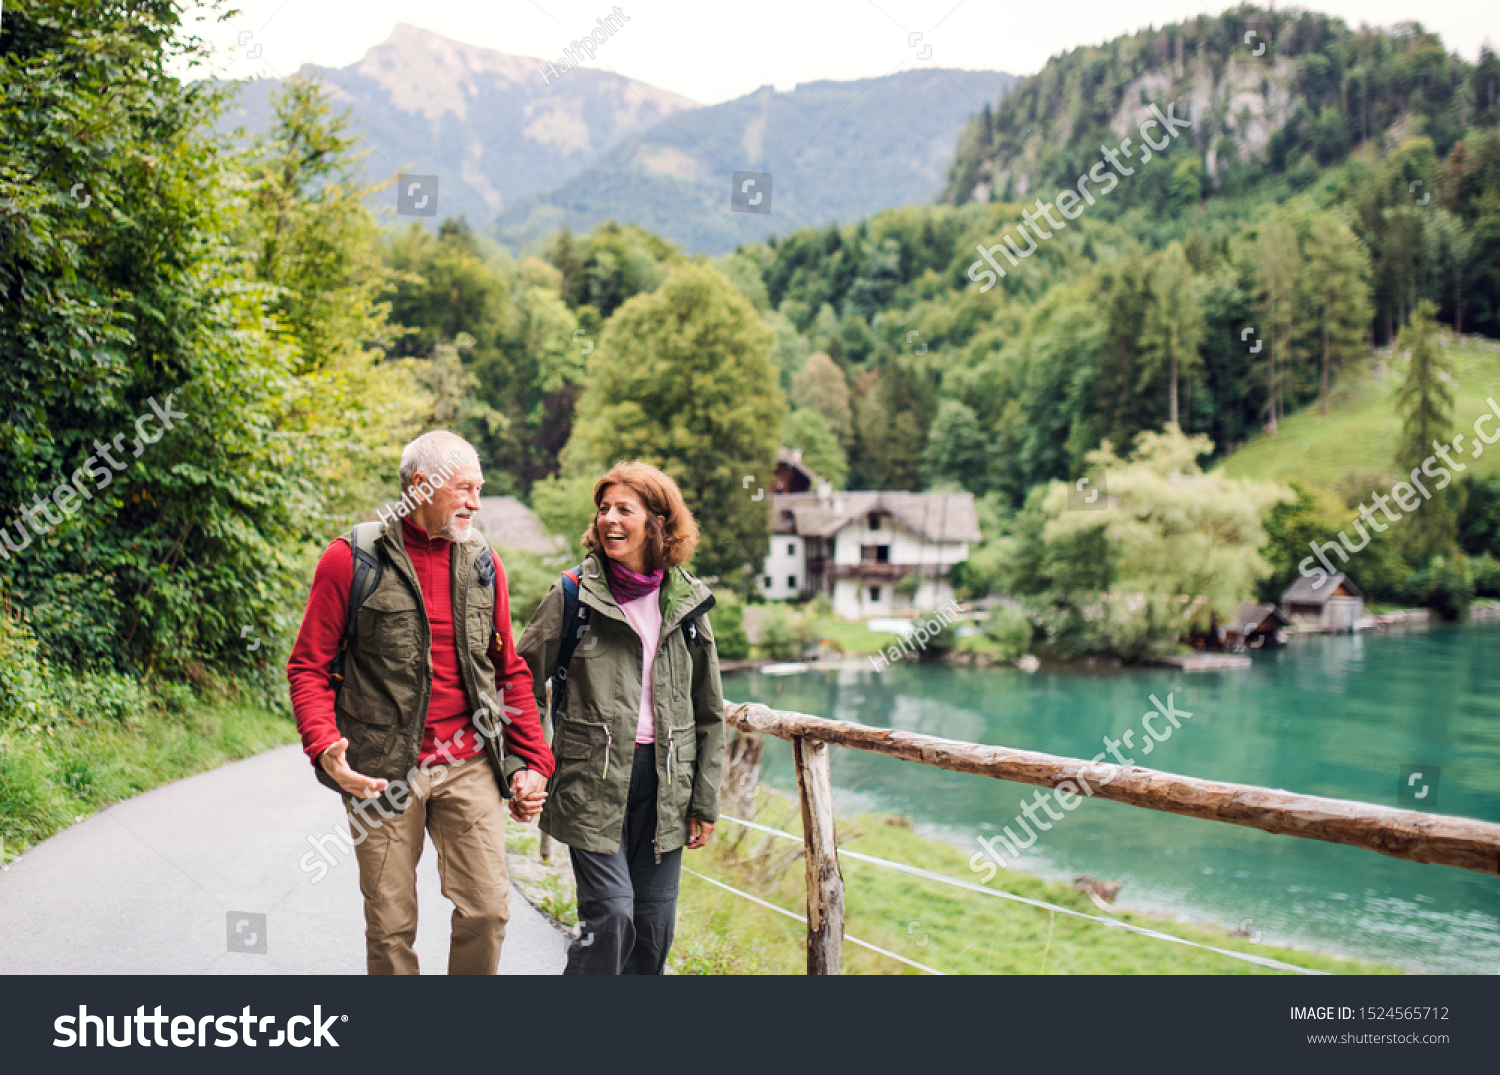 A senior pensioner couple hiking in nature, holding hands. #1524565712